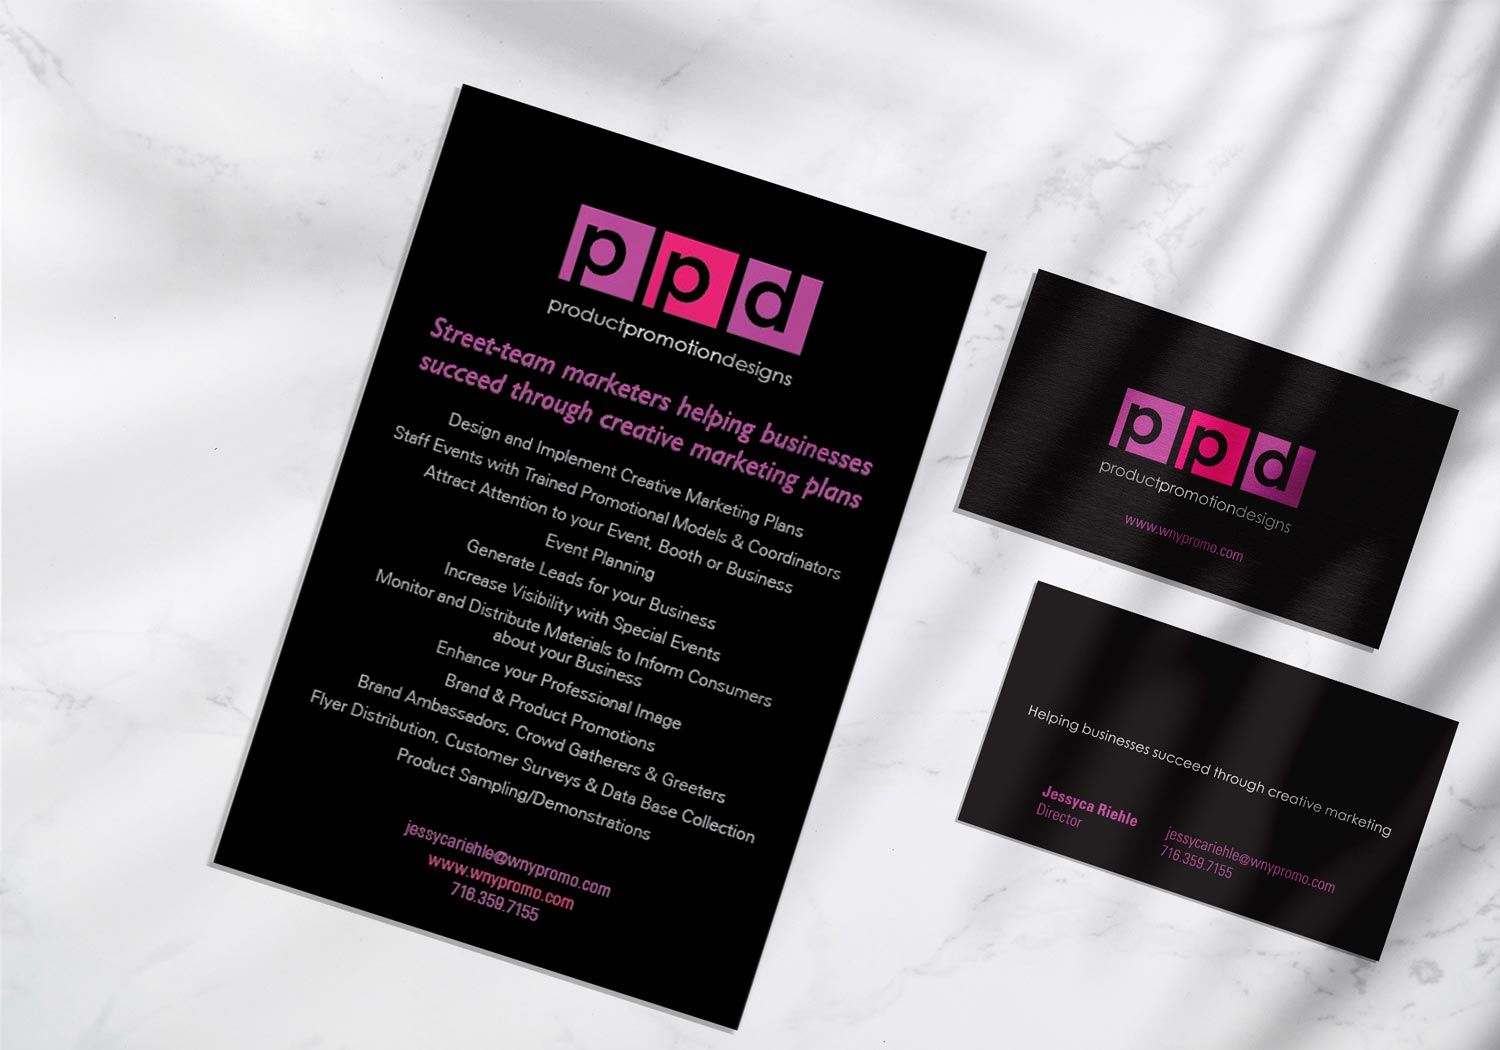 PPD Product Promotion Designs